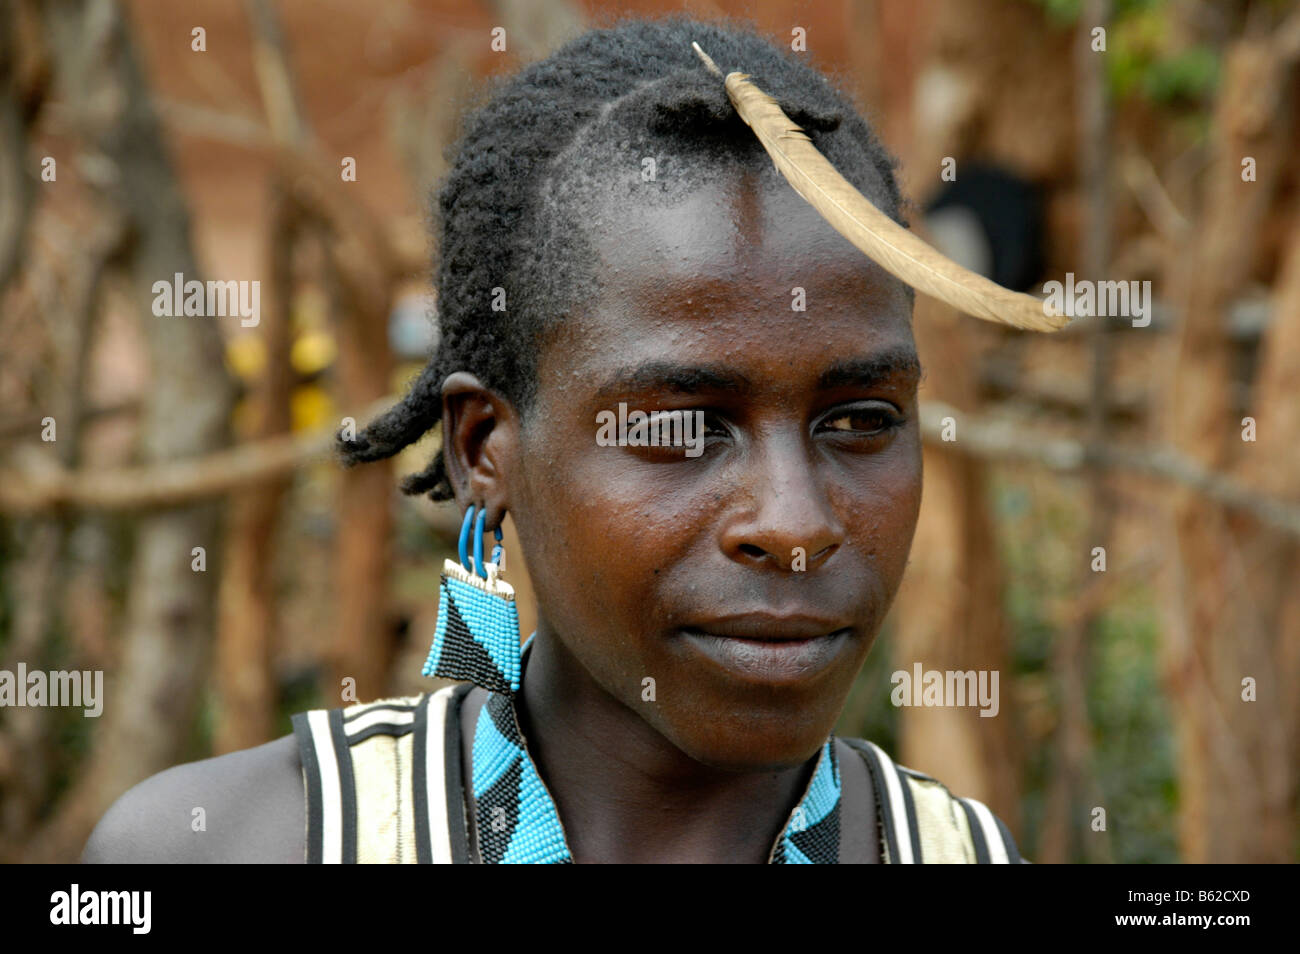 Portrait of a young man with a feather in his hair, Keyafer, Ethiopia, Africa - Stock Image